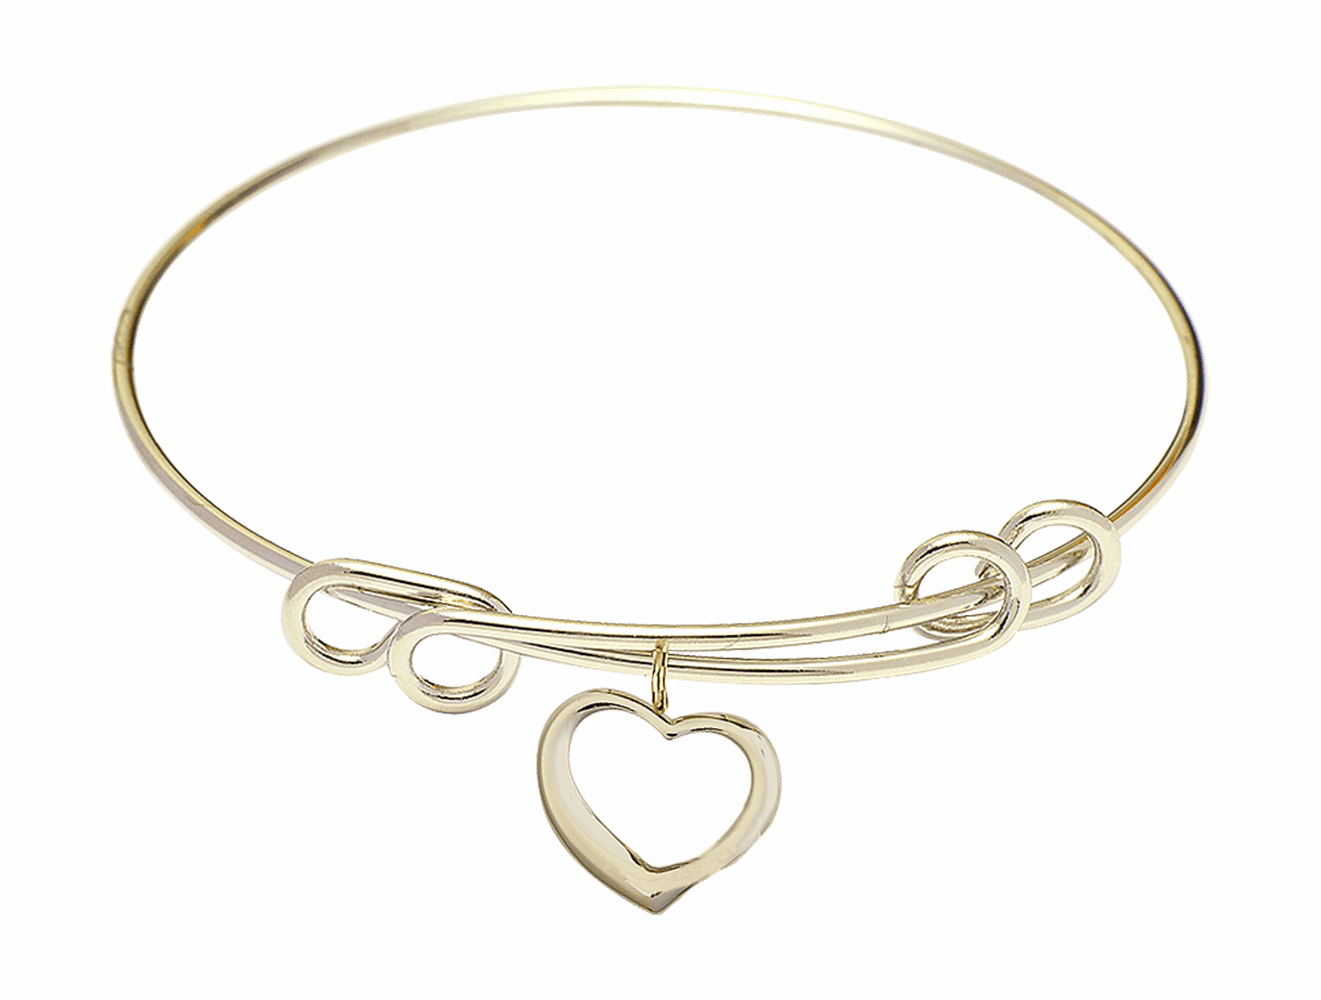 Round Double Loop Bangle Bracelet w/Heart Shaped by Bliss Mfg